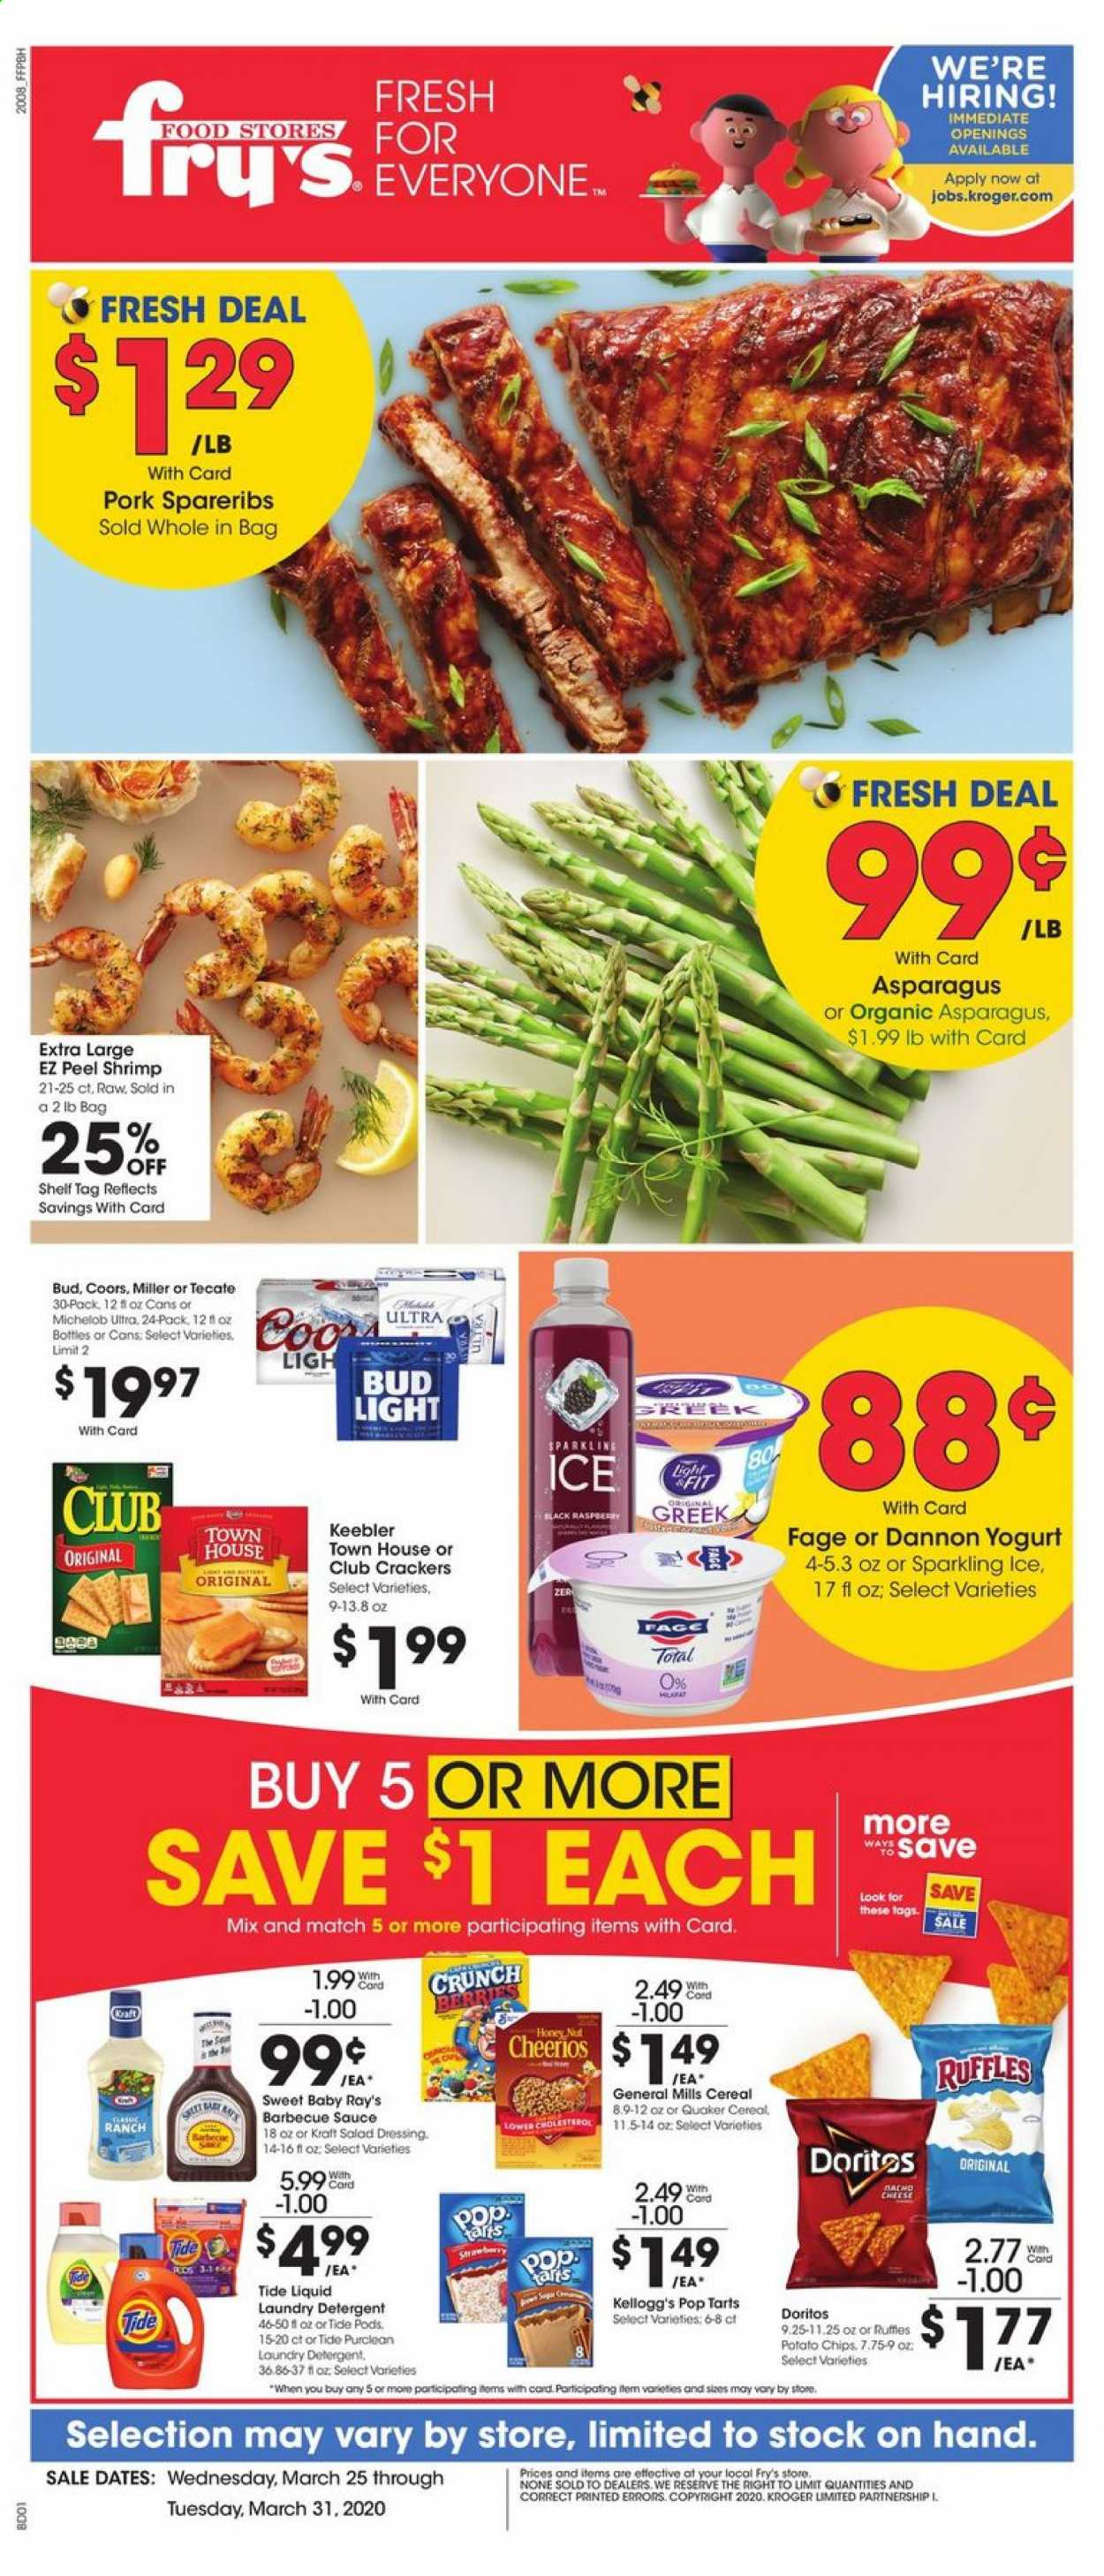 Fry's Flyer - 03.25.2020 - 03.31.2020 - Sales products - Bud Light, Coors, Michelob, asparagus, shrimps, salad, cheese, sauce, cracker, crackers, Doritos, potato chips, chips, cereals, Cheerios, barbecue sauce, ranch dressing, dressing, salad dressing, honey, pork meat, detergent, Tide, laundry detergent. Page 1.